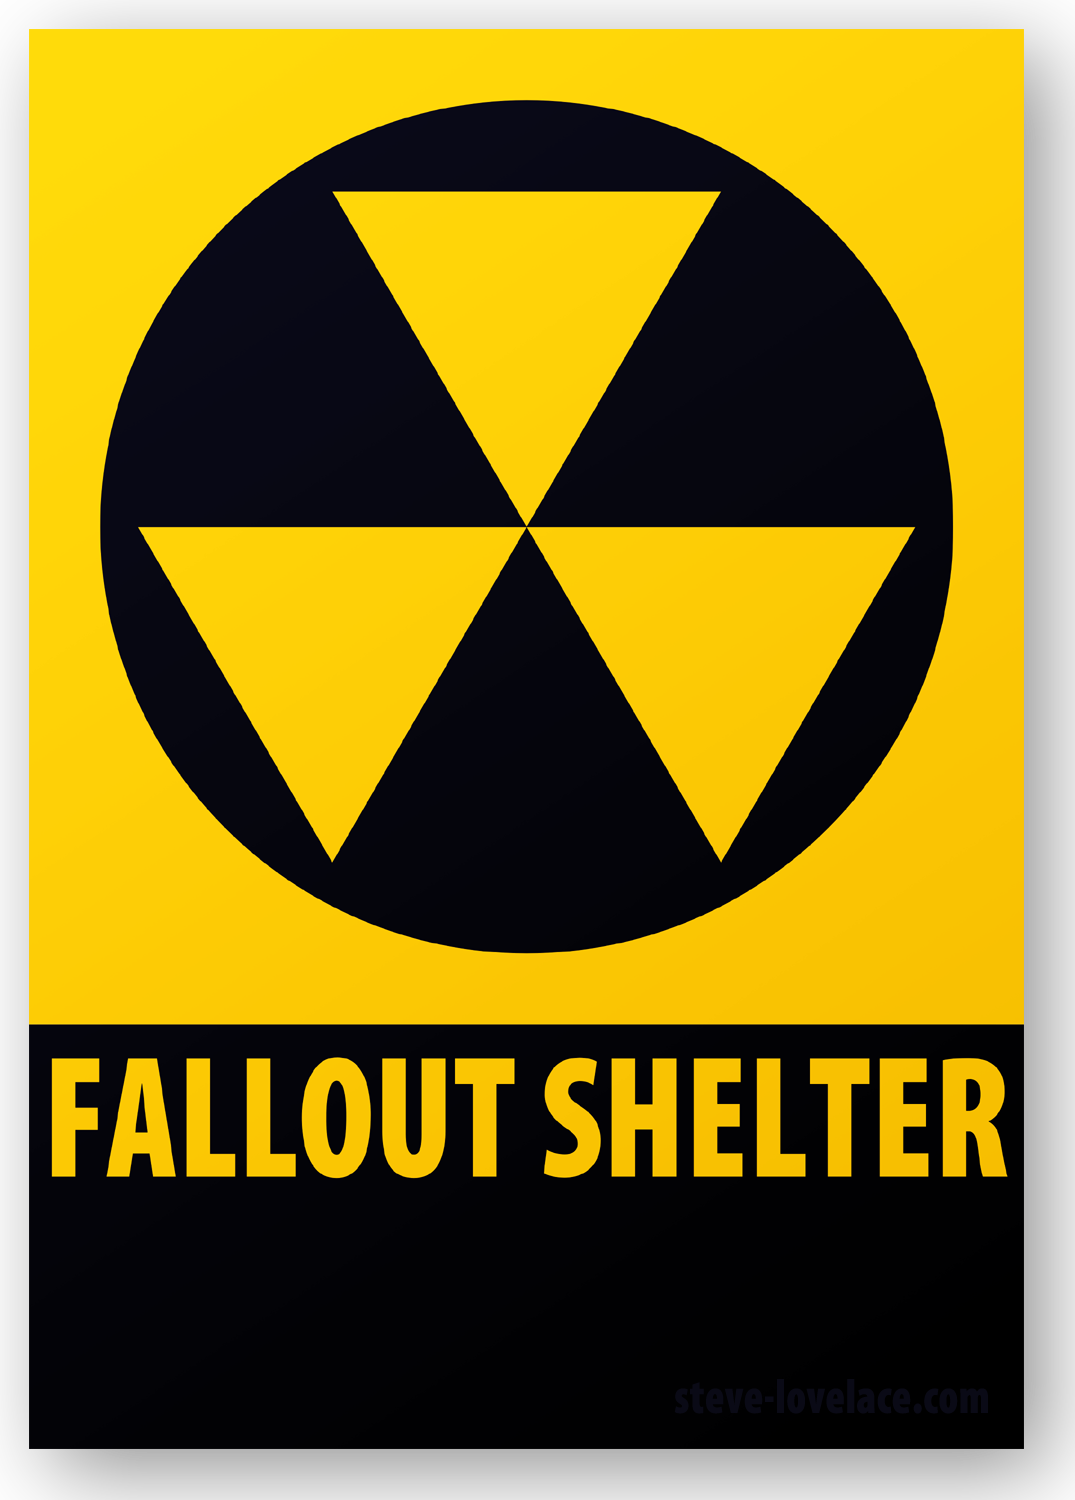 Cold war symbol image. Youtube clipart fallout